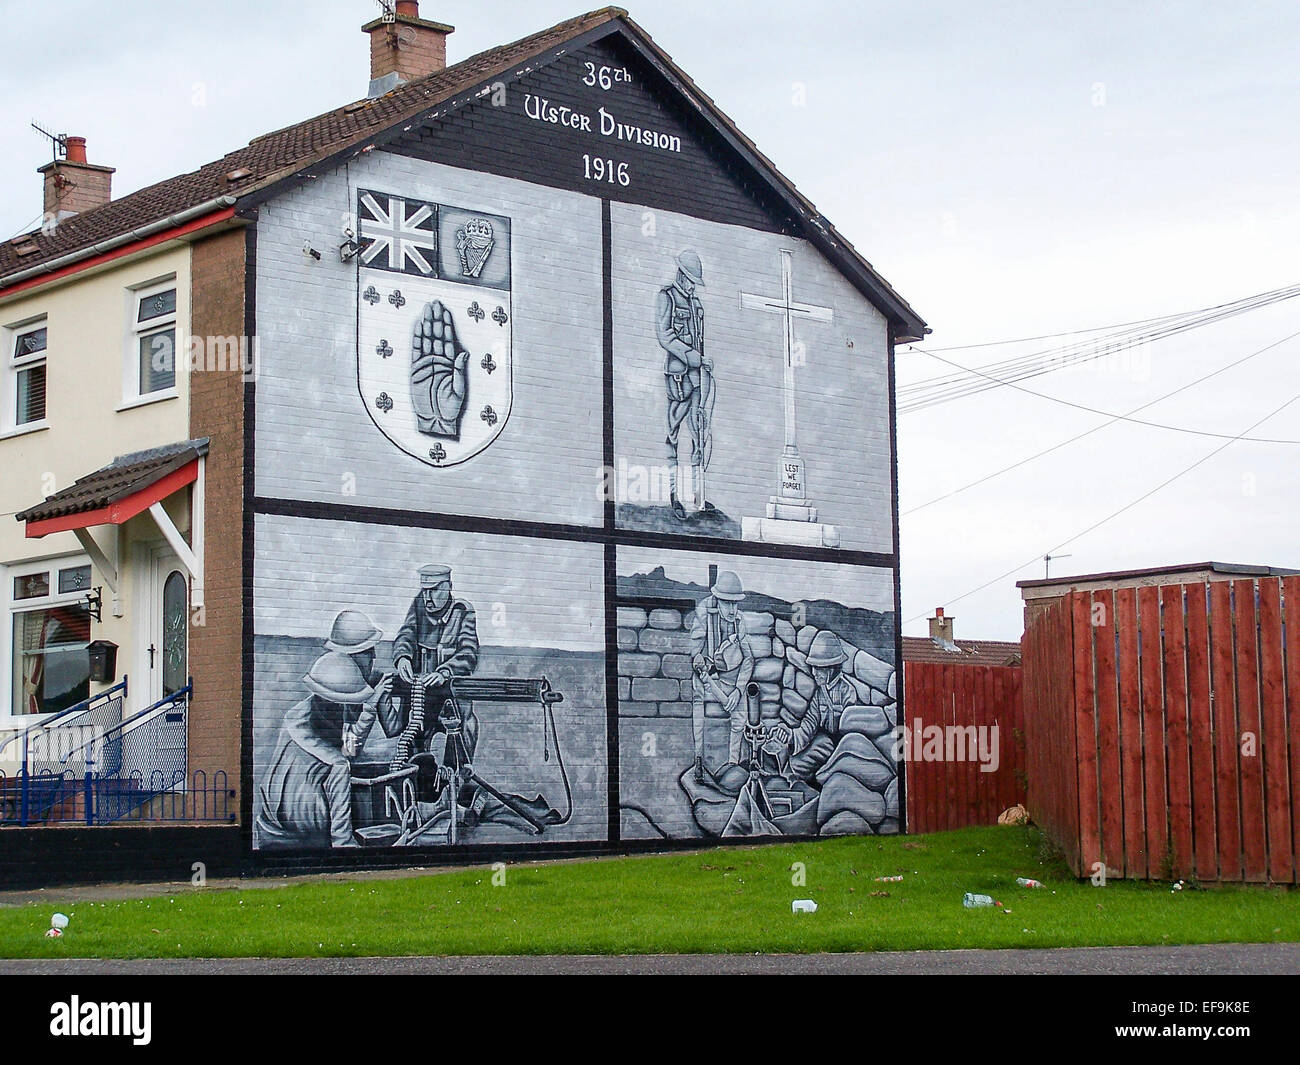 Mural on a gable wall in Belfast commemorating the 36th Ulster Division from the WW1 battle at Thiepval. - Stock Image